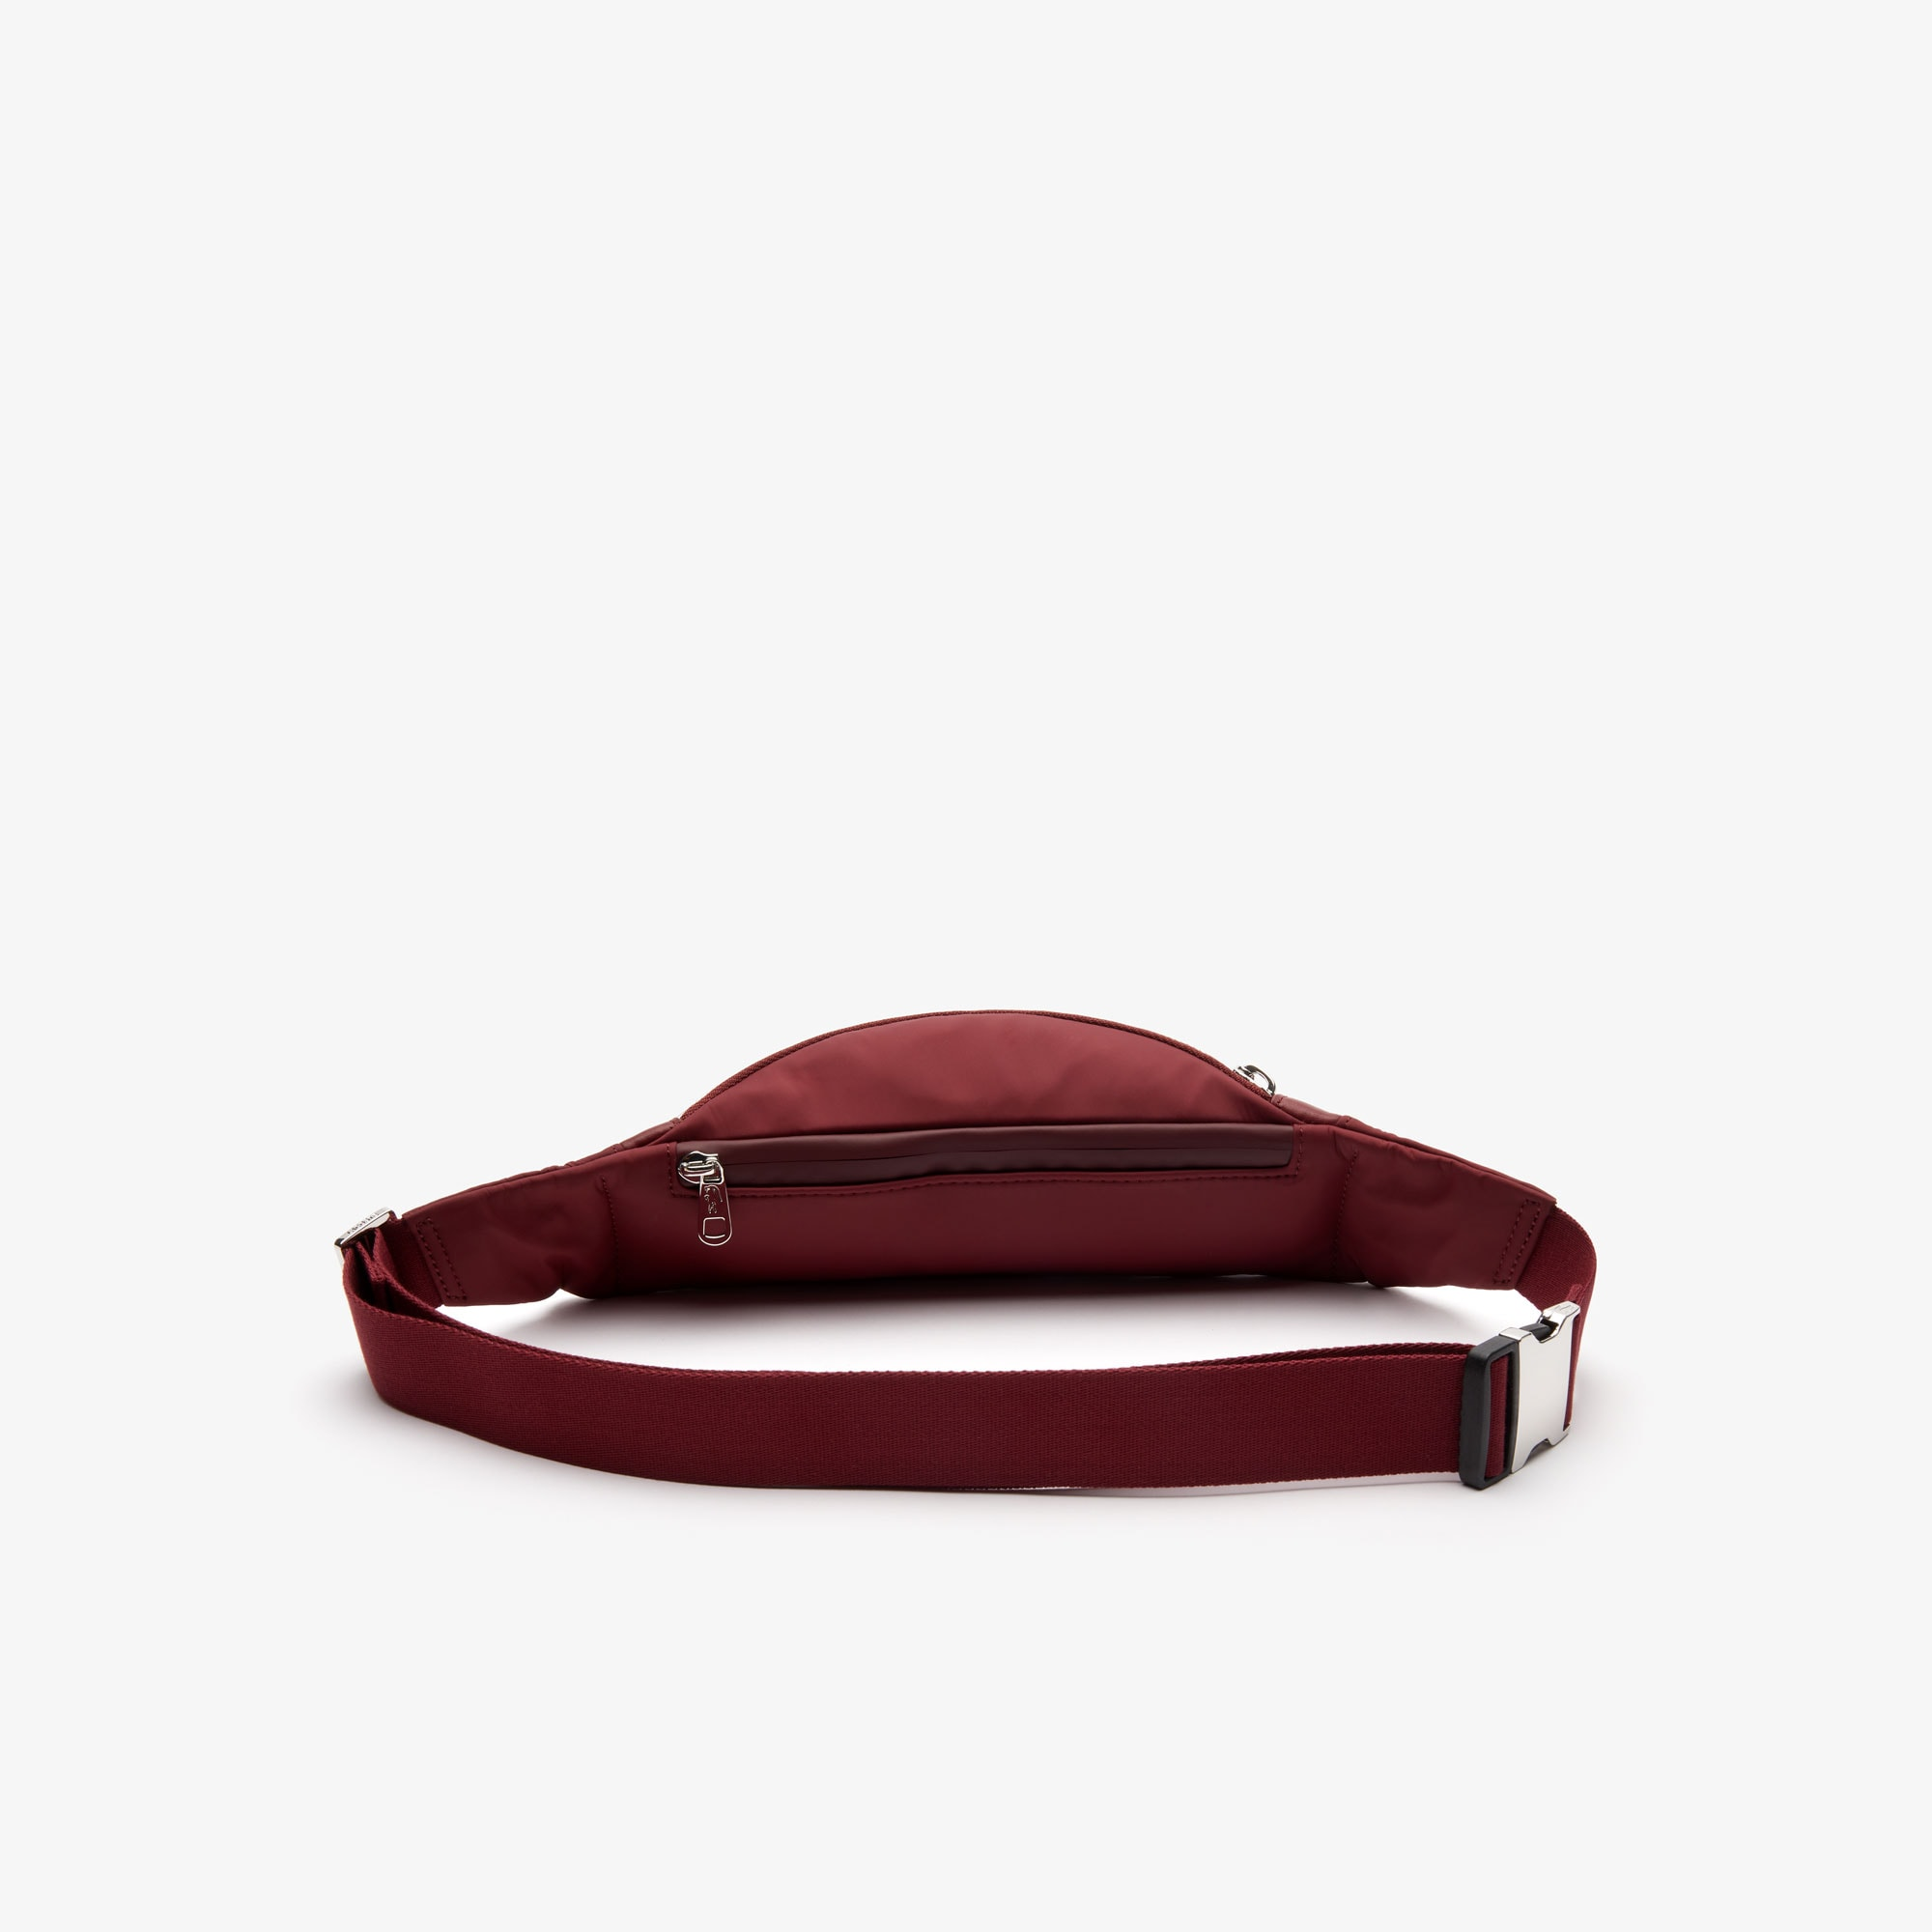 Men's L.12.12 Signature Leather Zip Fanny Pack